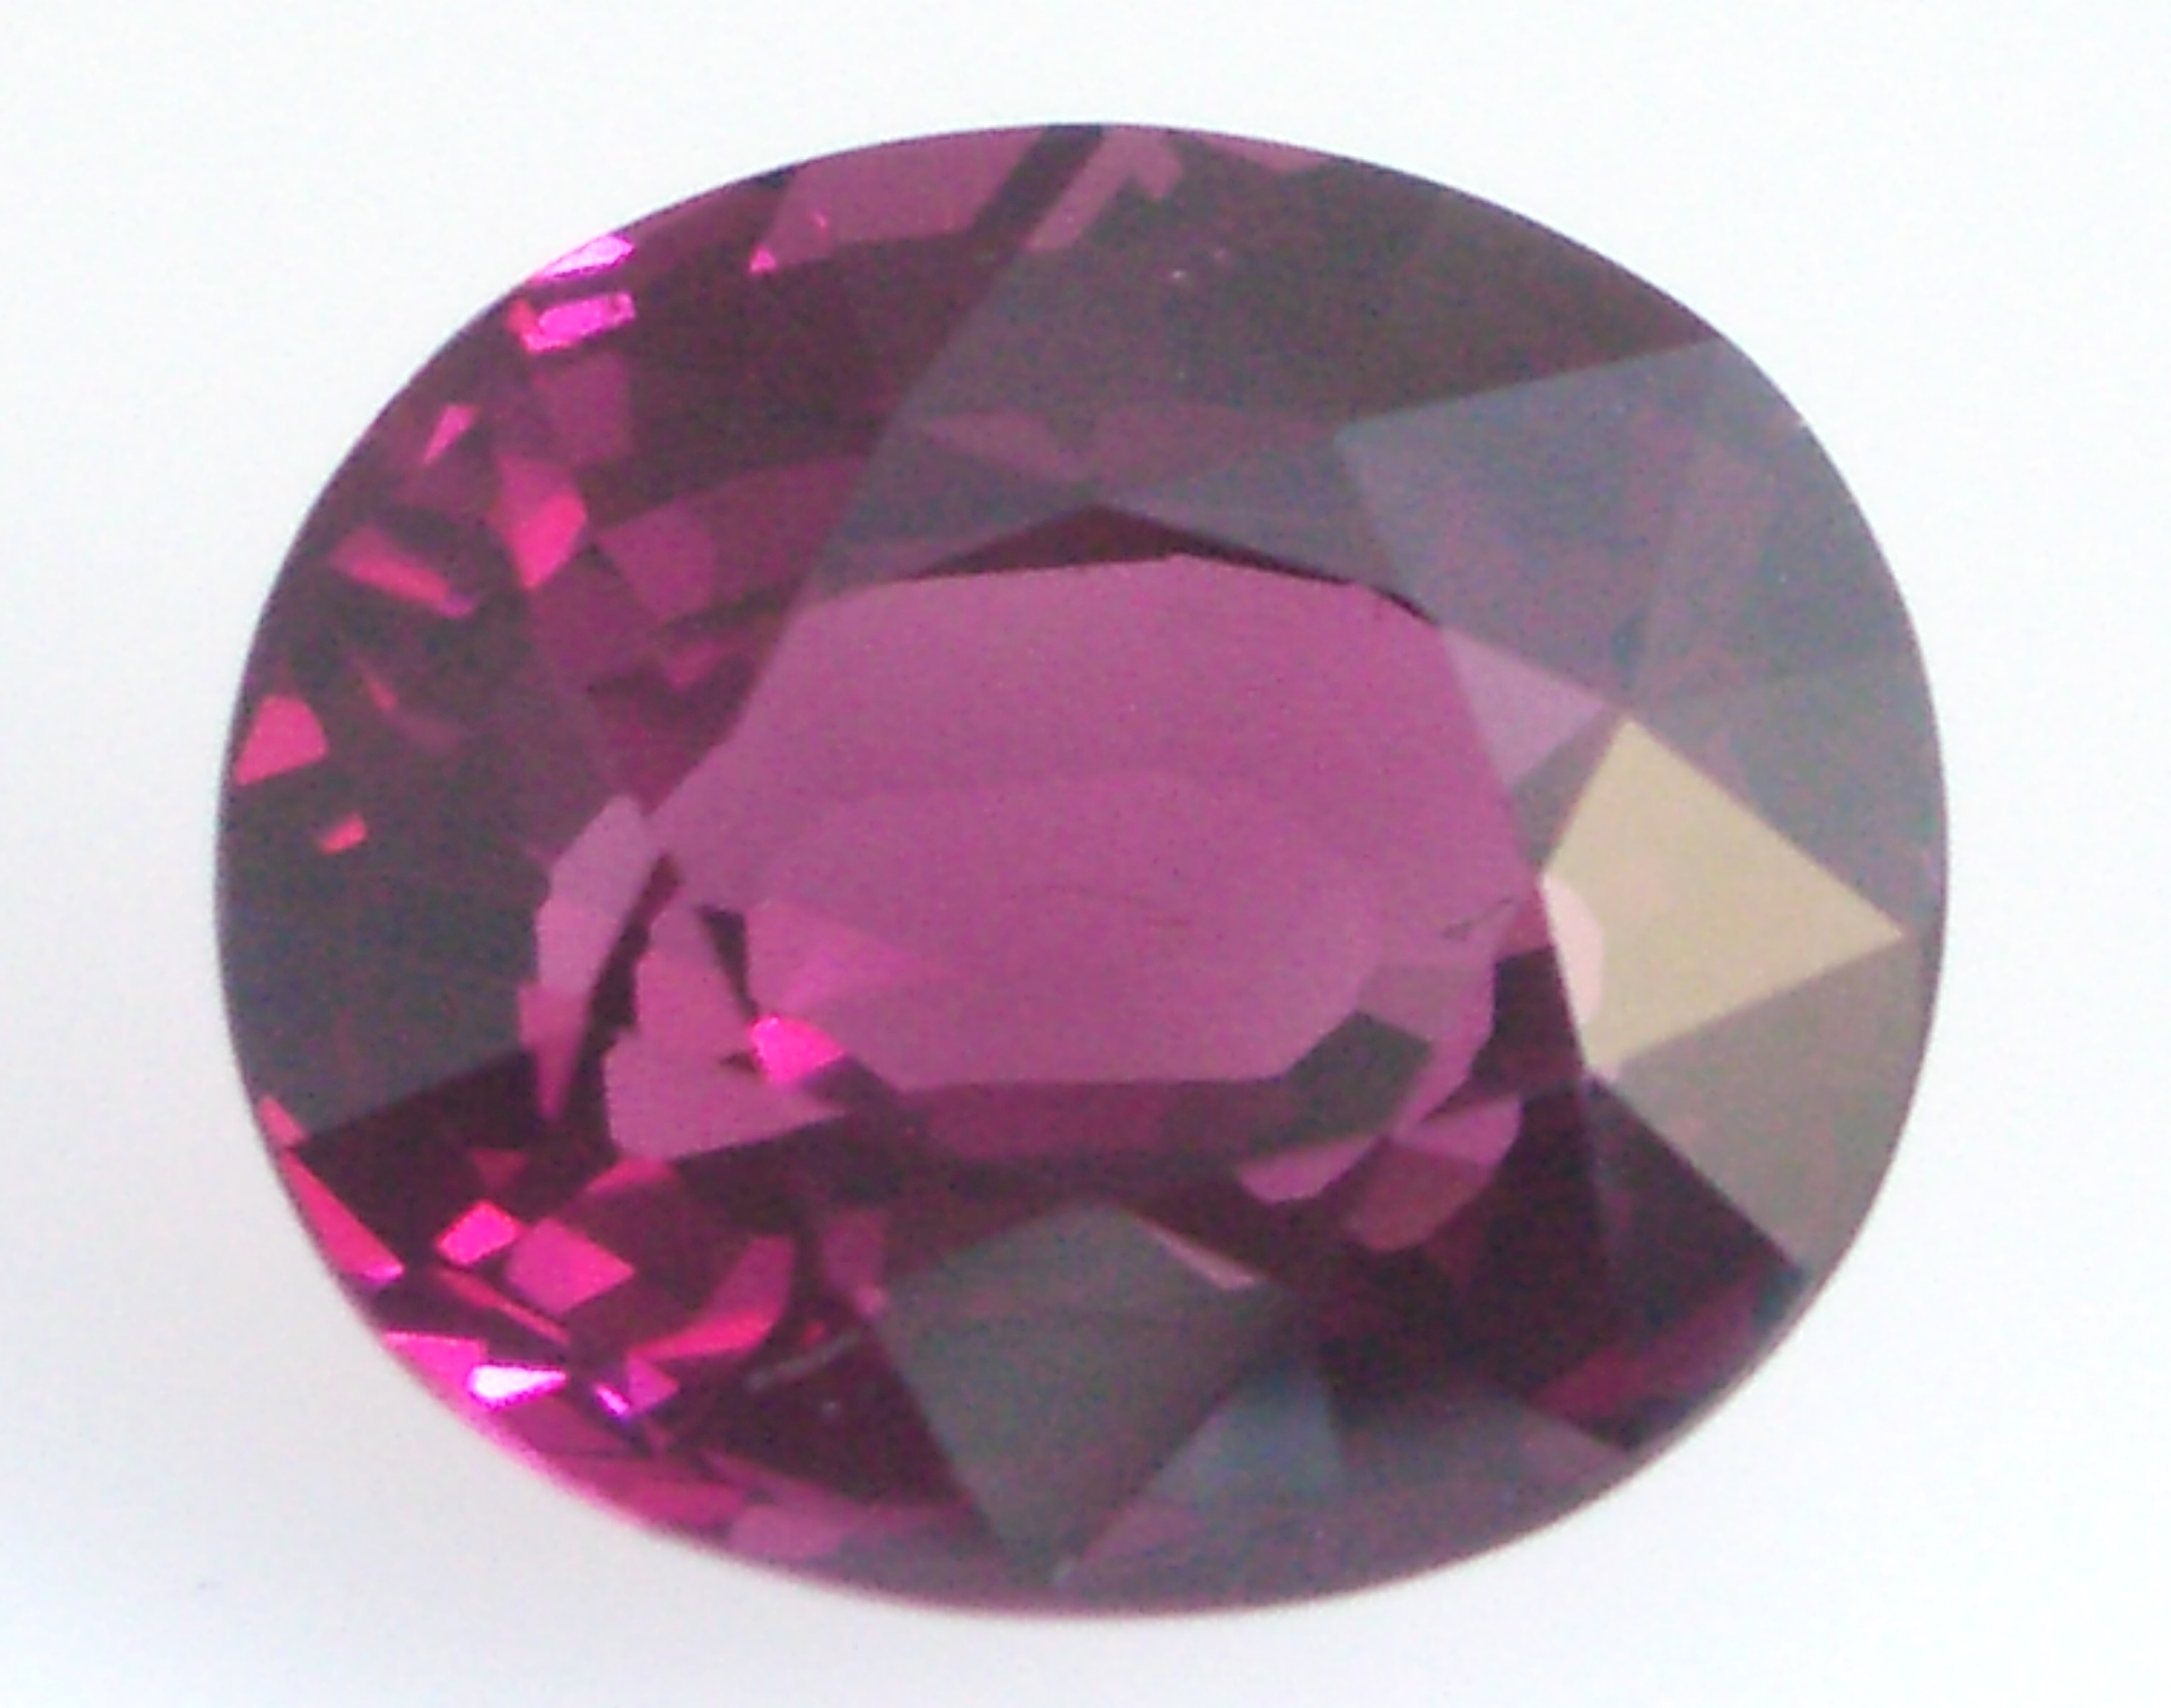 a gemstone from gems stone color newbie blog sapphire gemstones insights purple colored sapphires omi